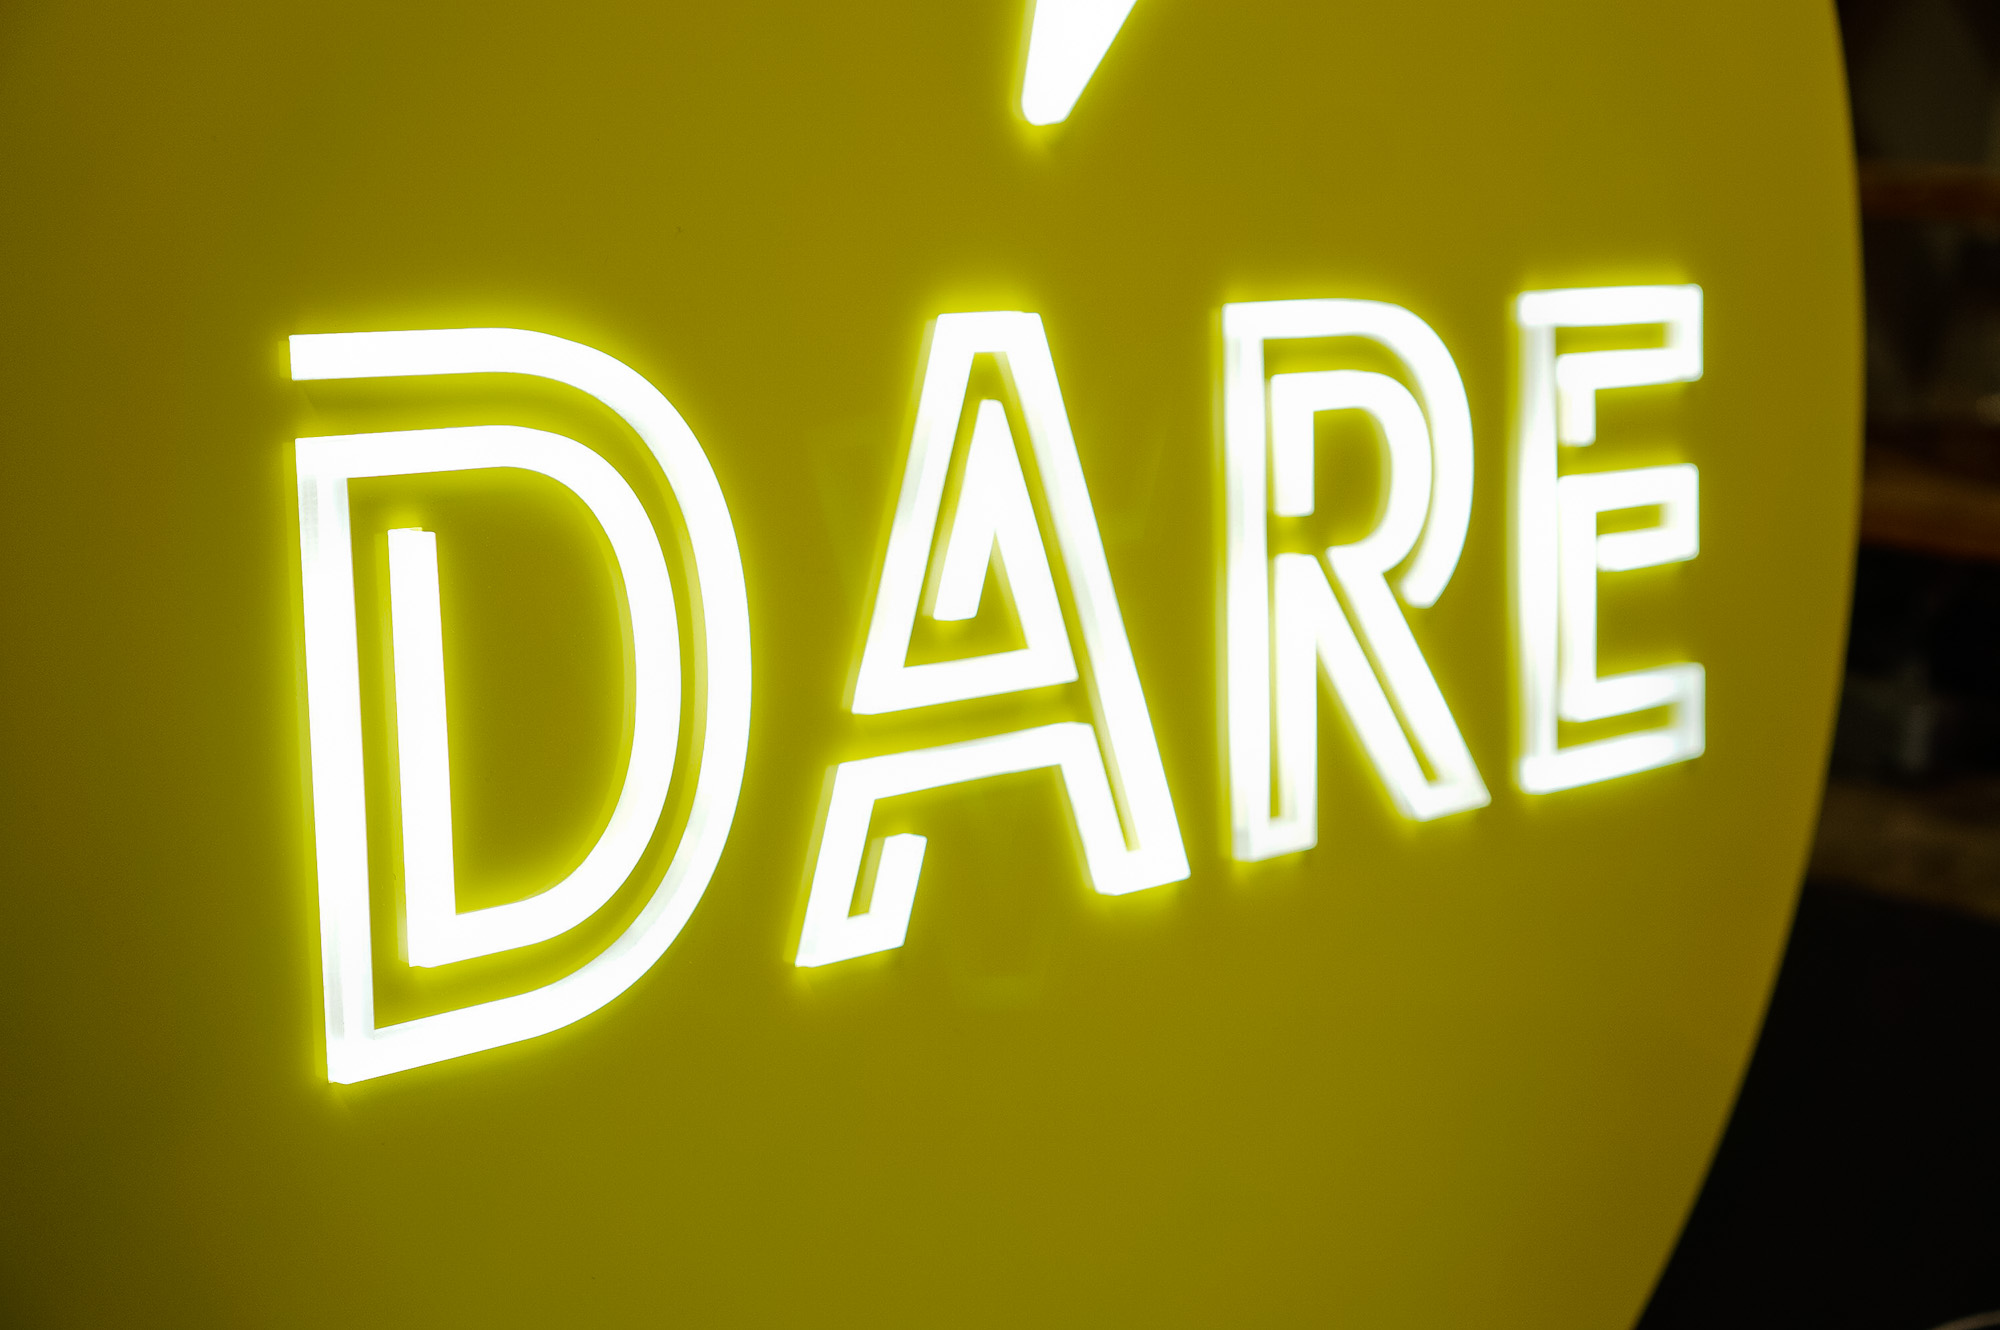 Yellow neon-style team sign for Facebook, an American online social media and social networking service company.